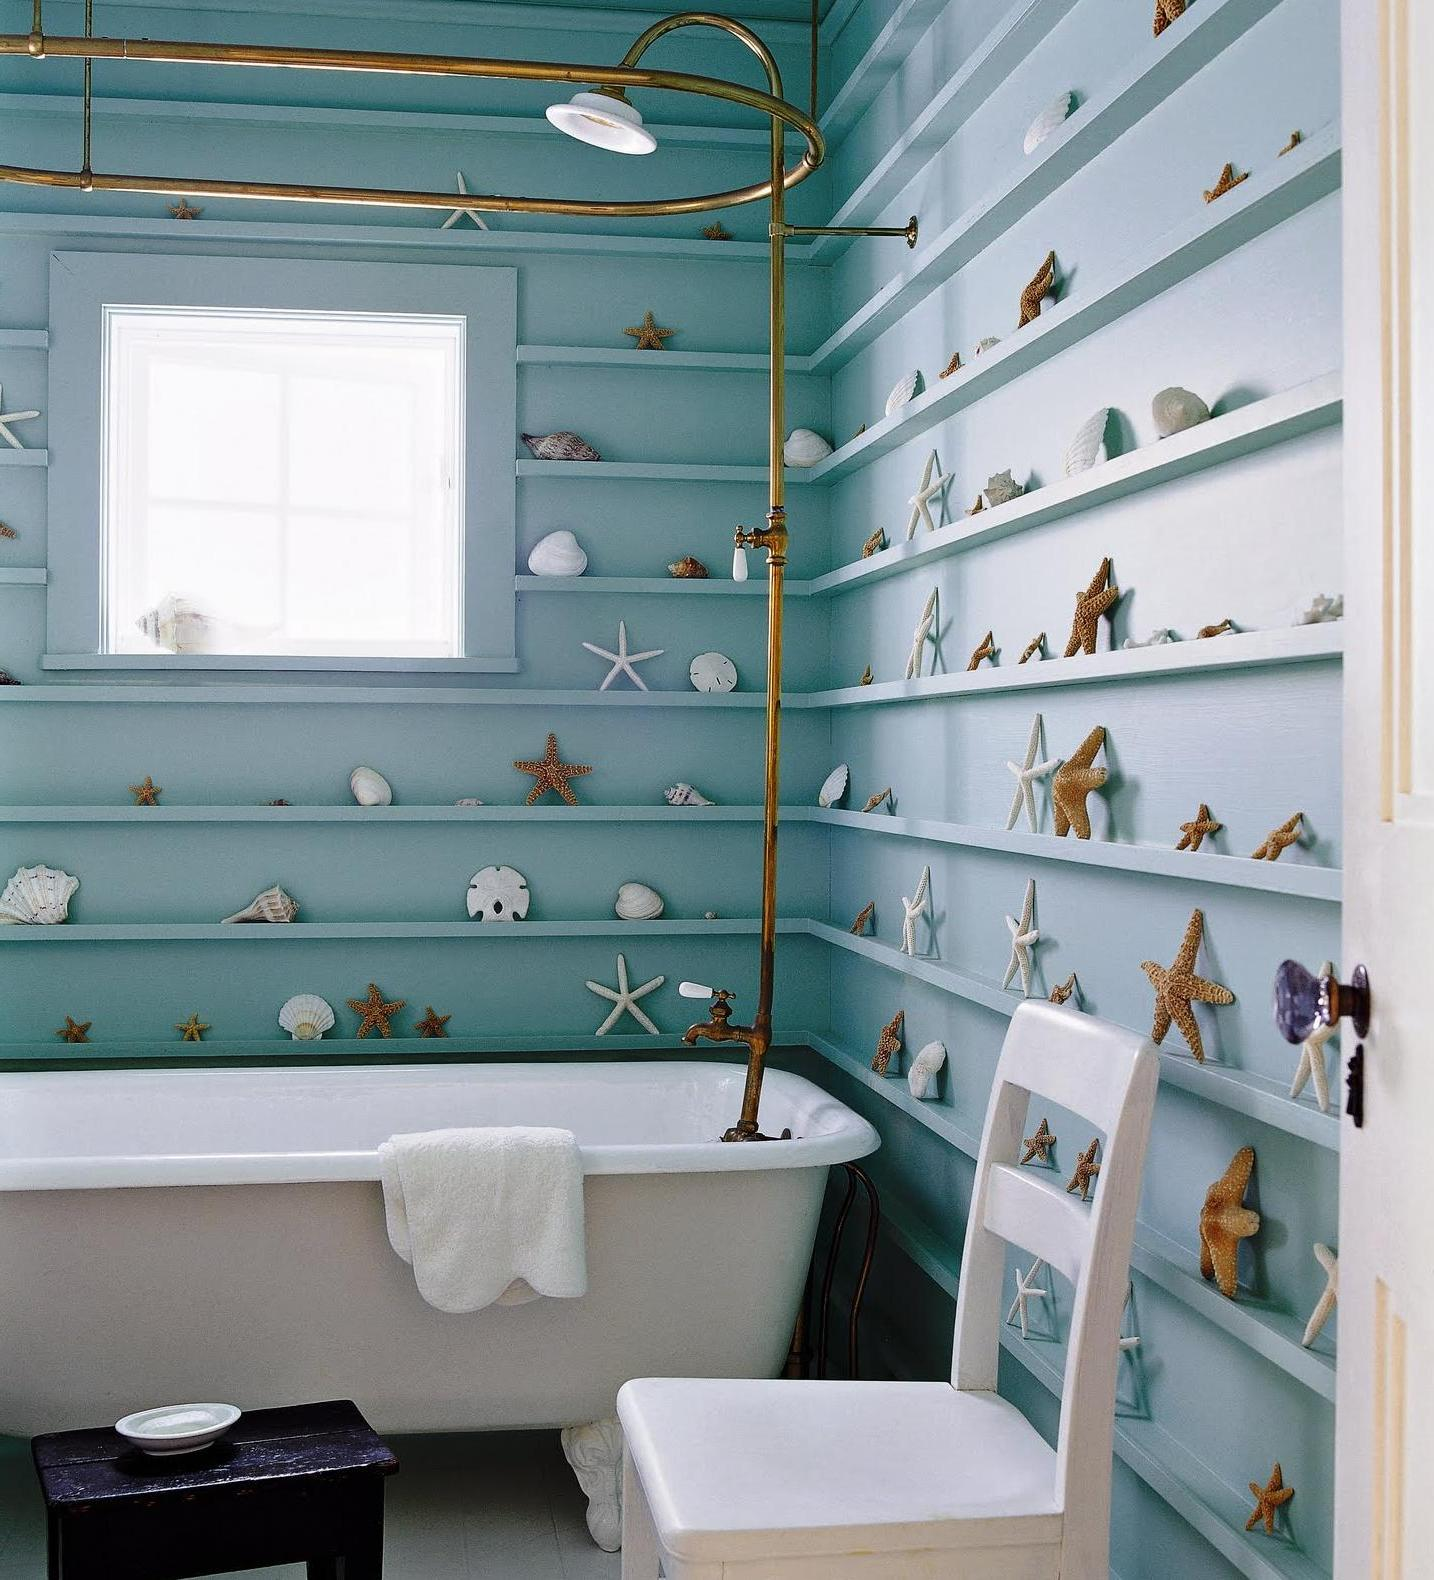 Image of: beach wall decor for bathroom